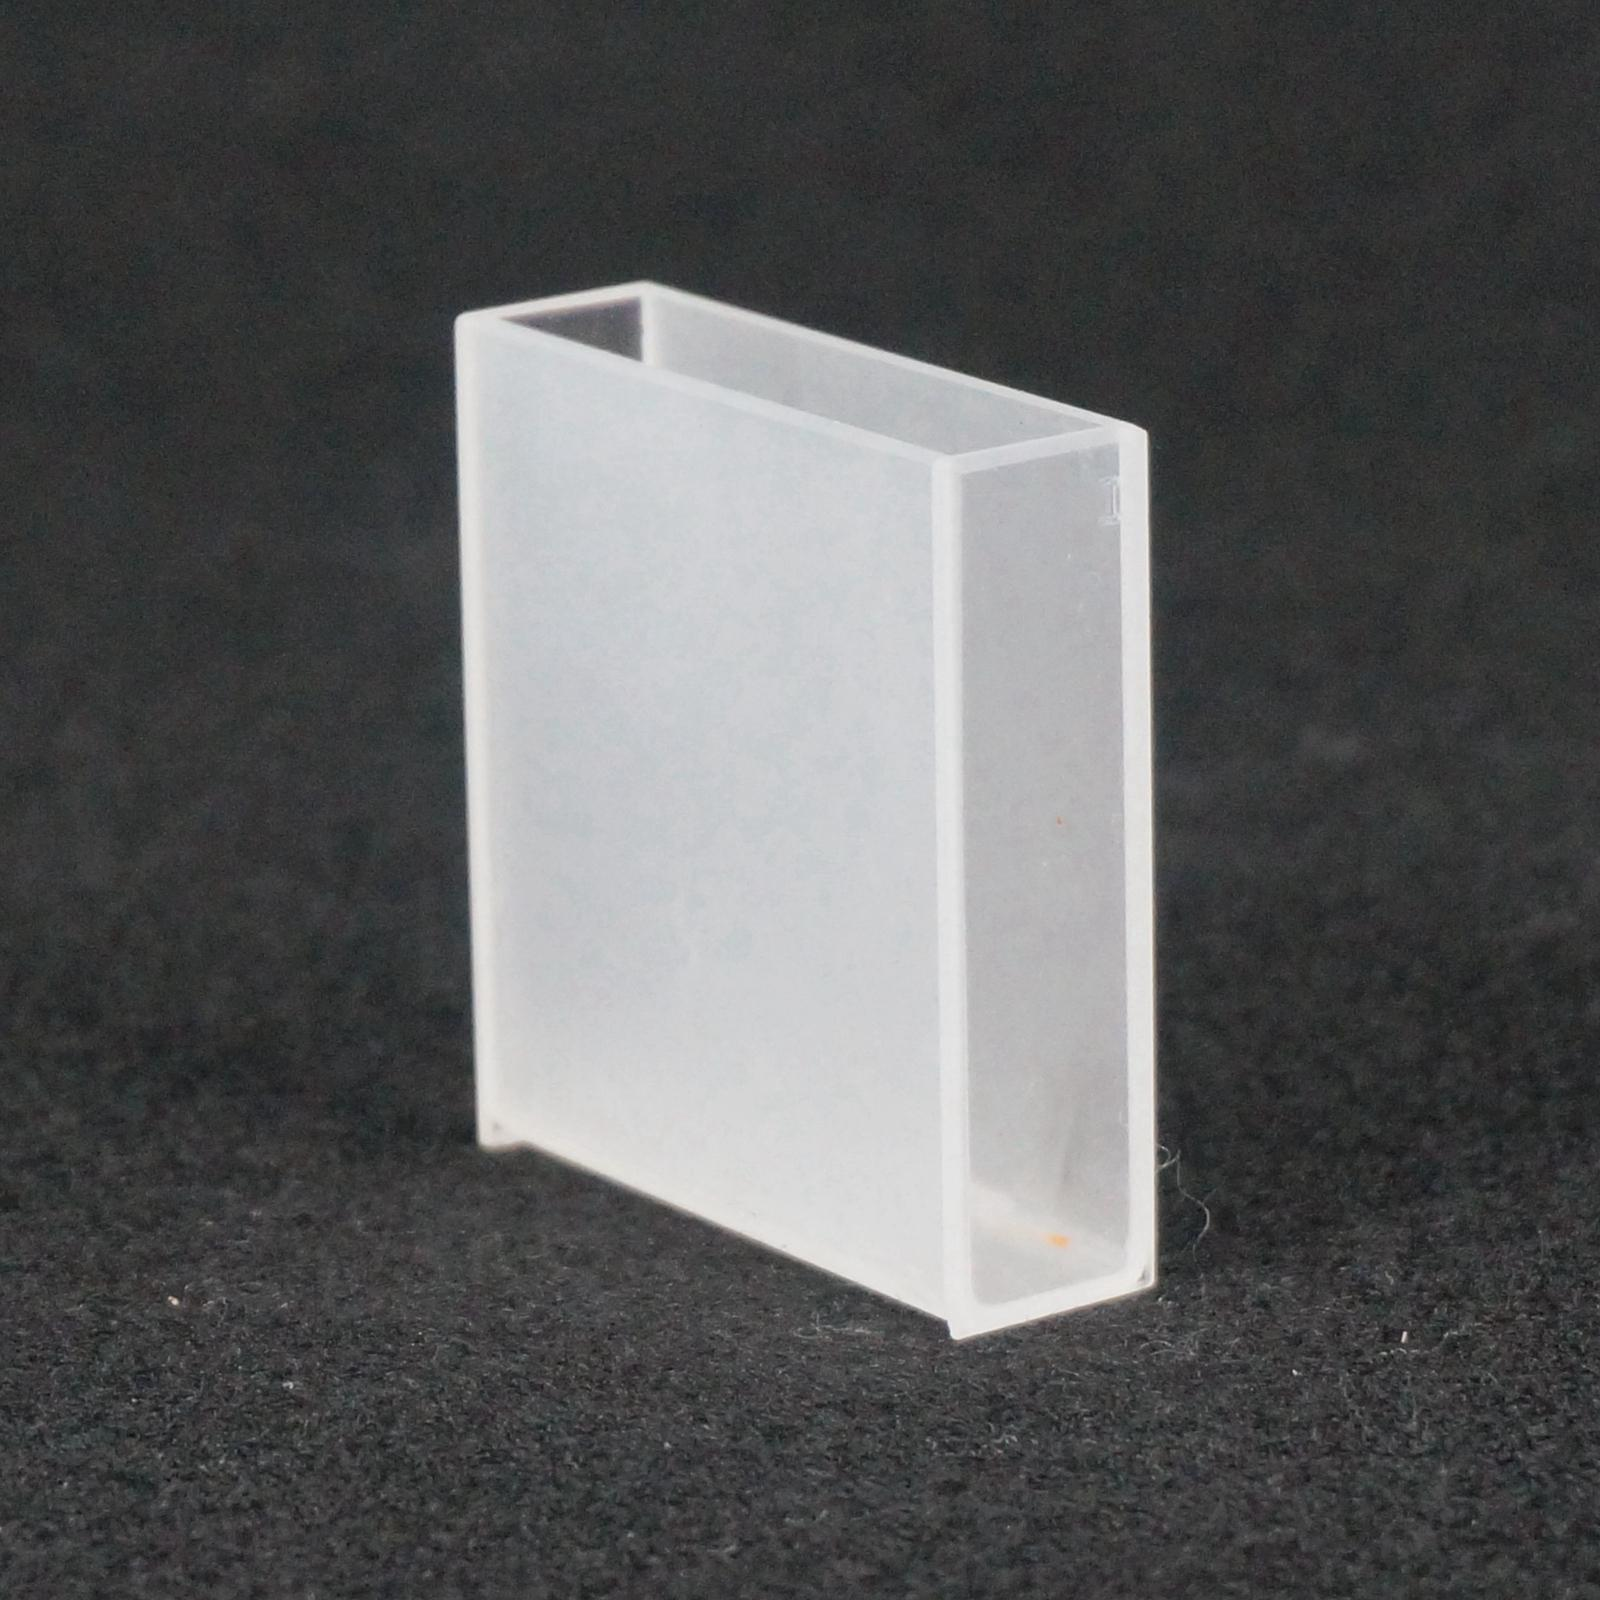 40mm Path Length Jgs-3 Quartz Cell Cuvette Cell With Telfon Lid For For Infrared Spectrometer enzyme electrodes for biosensor & biofuel cell applications page 3